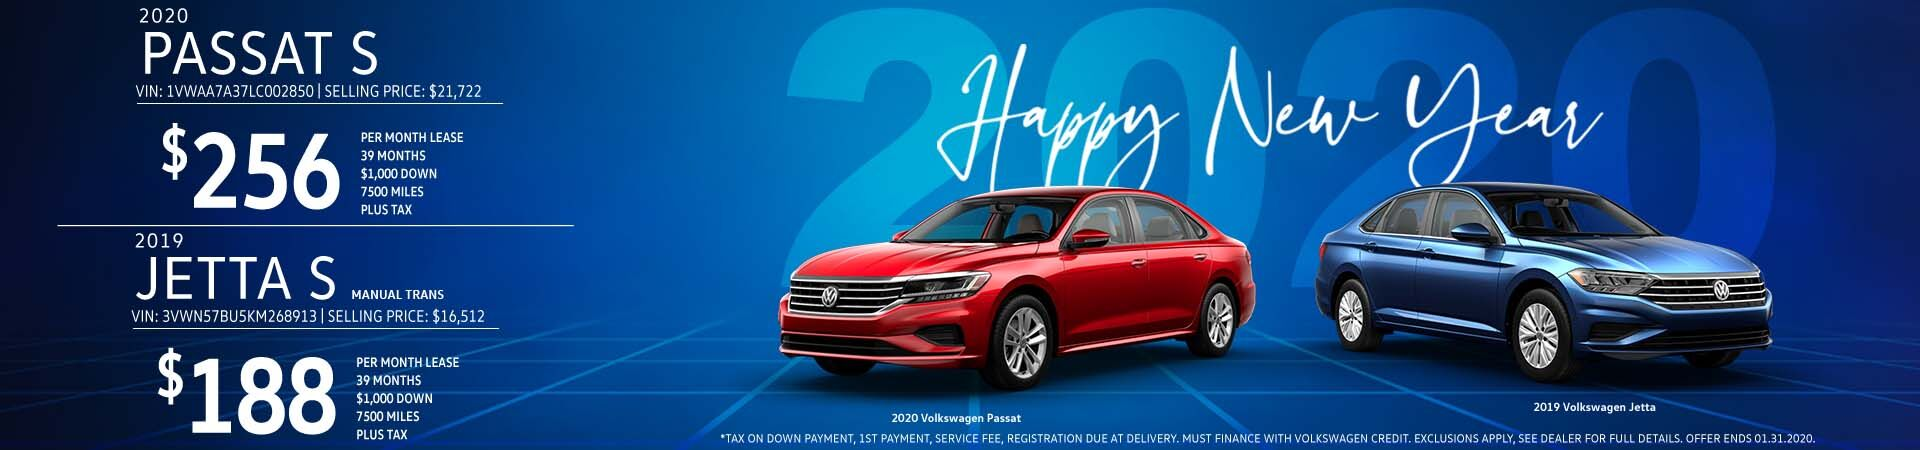 Hall Volkswagen Jetta Passat January 2020 Offers